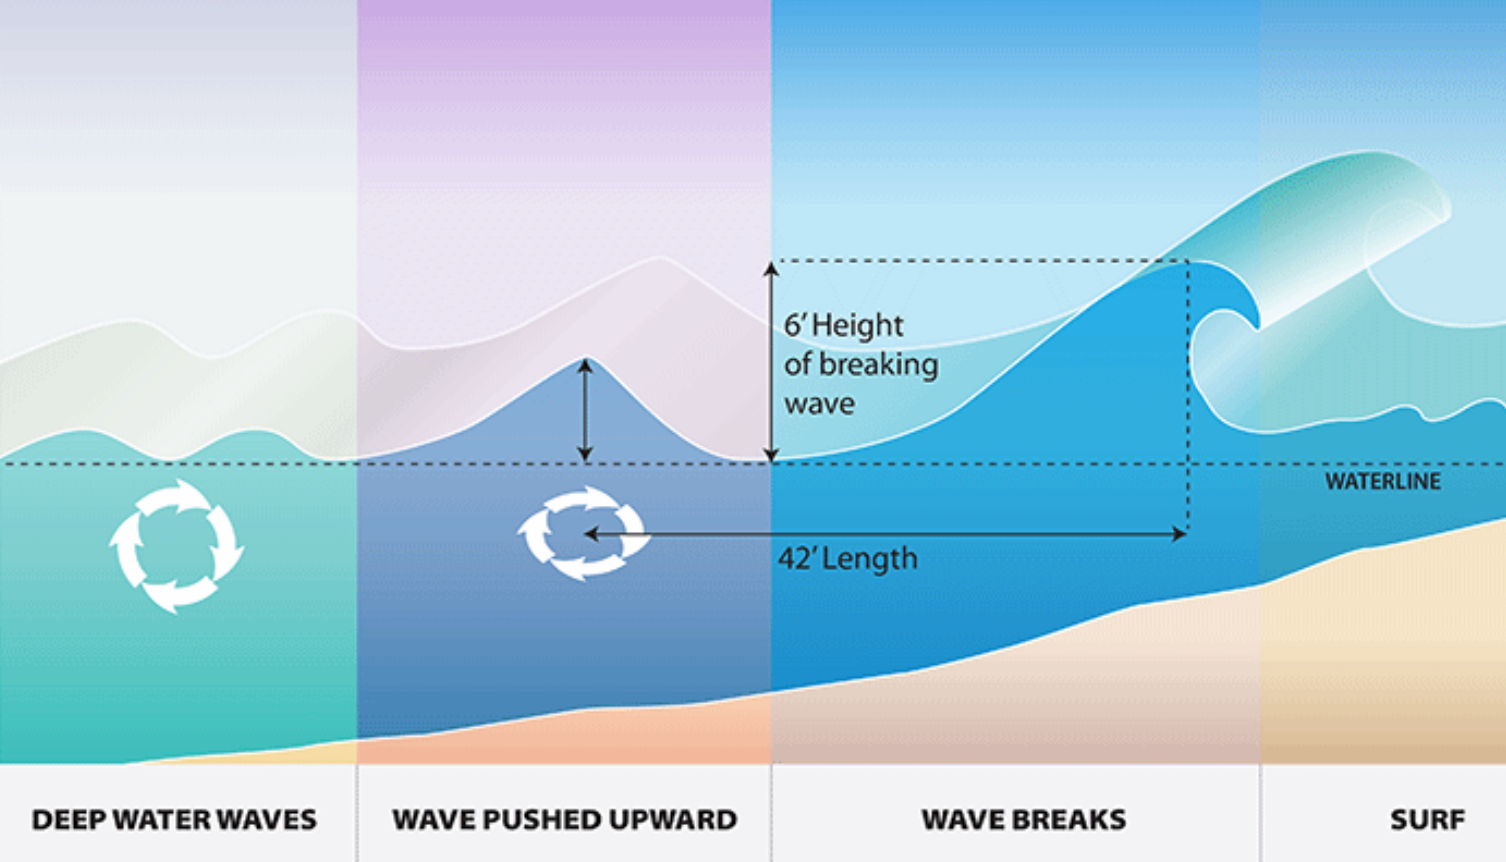 Waves in Nature Through Particle and Fractal Simulations